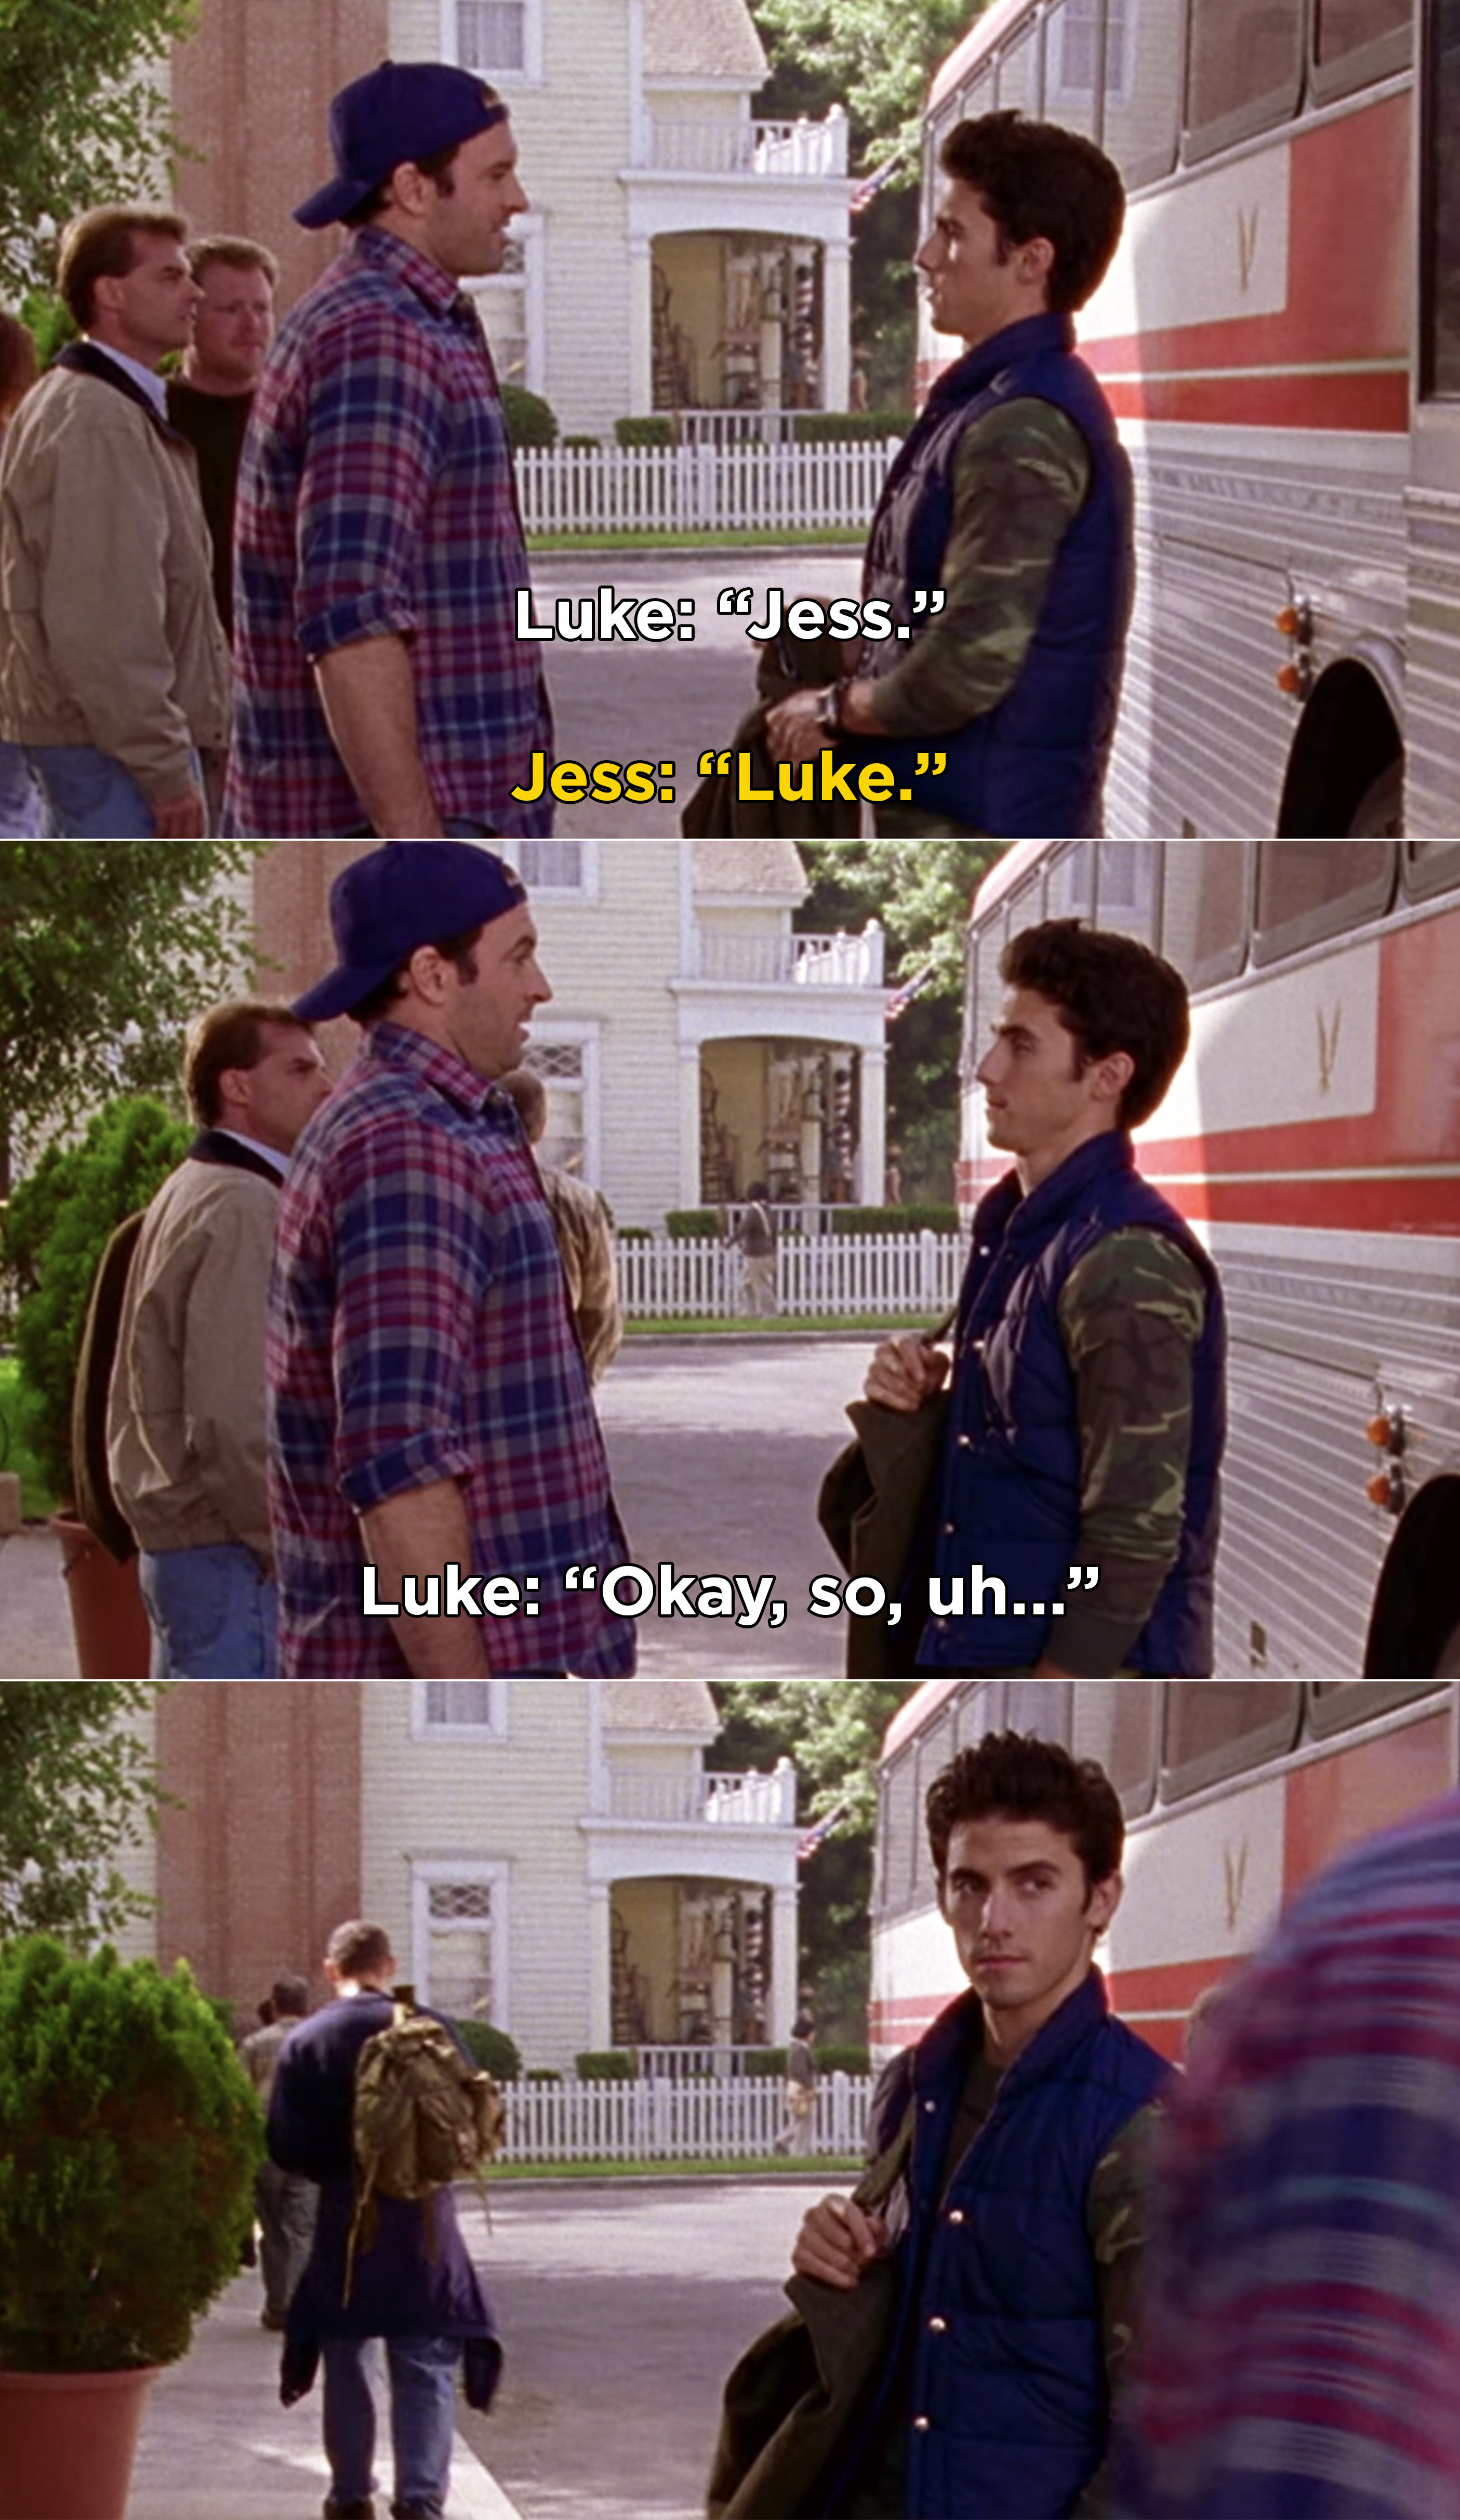 Luke and Jess awkwardly greeting each other after Jess steps off a bus